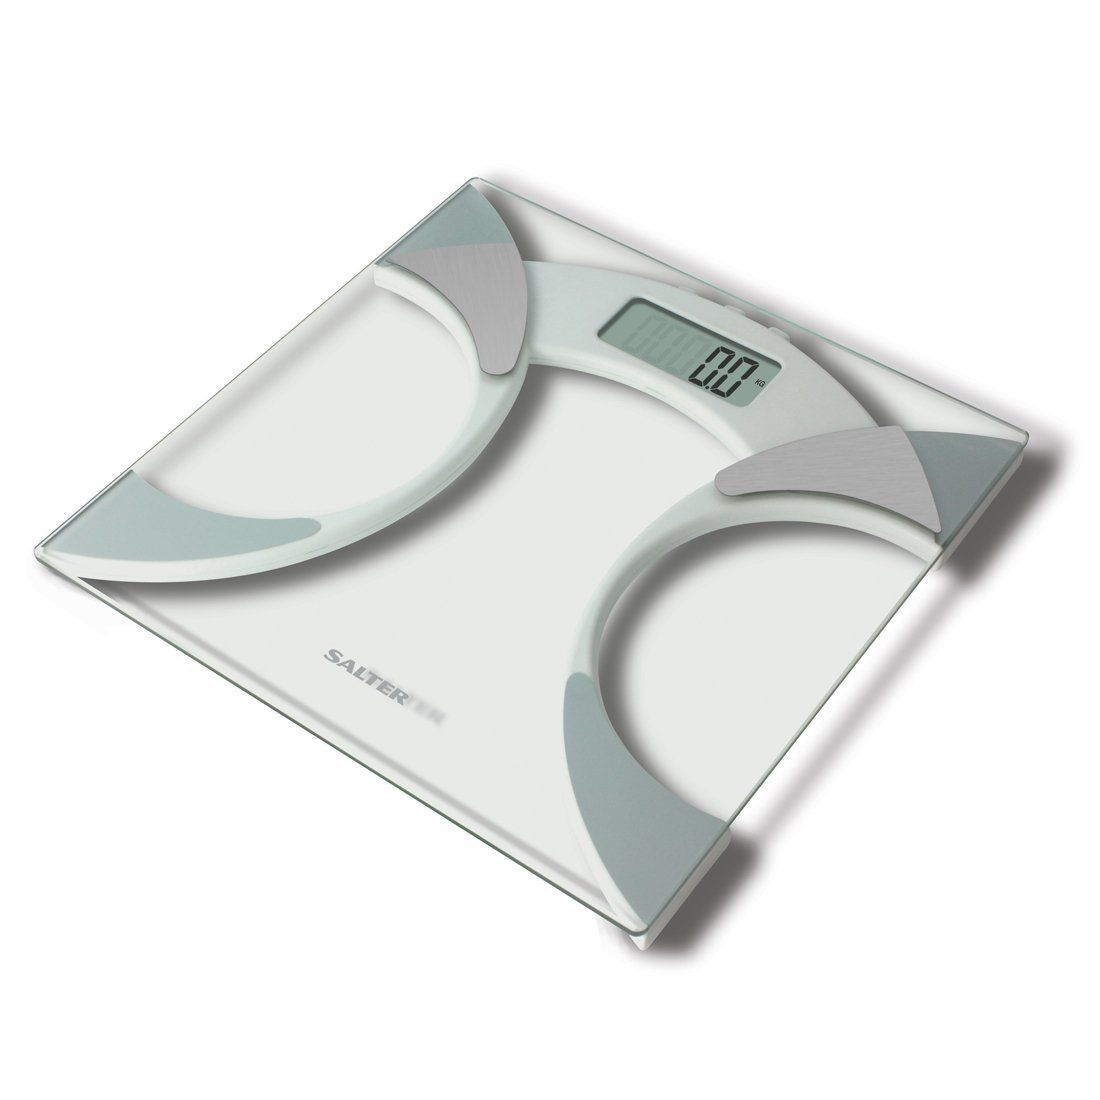 Innovative And Reliable The Salter Ultra Slim Analyser Bathroom Scales Provide A Non Invasive Solution To Bathroom Scale Bathroom Trends Bathroom Trends 2017